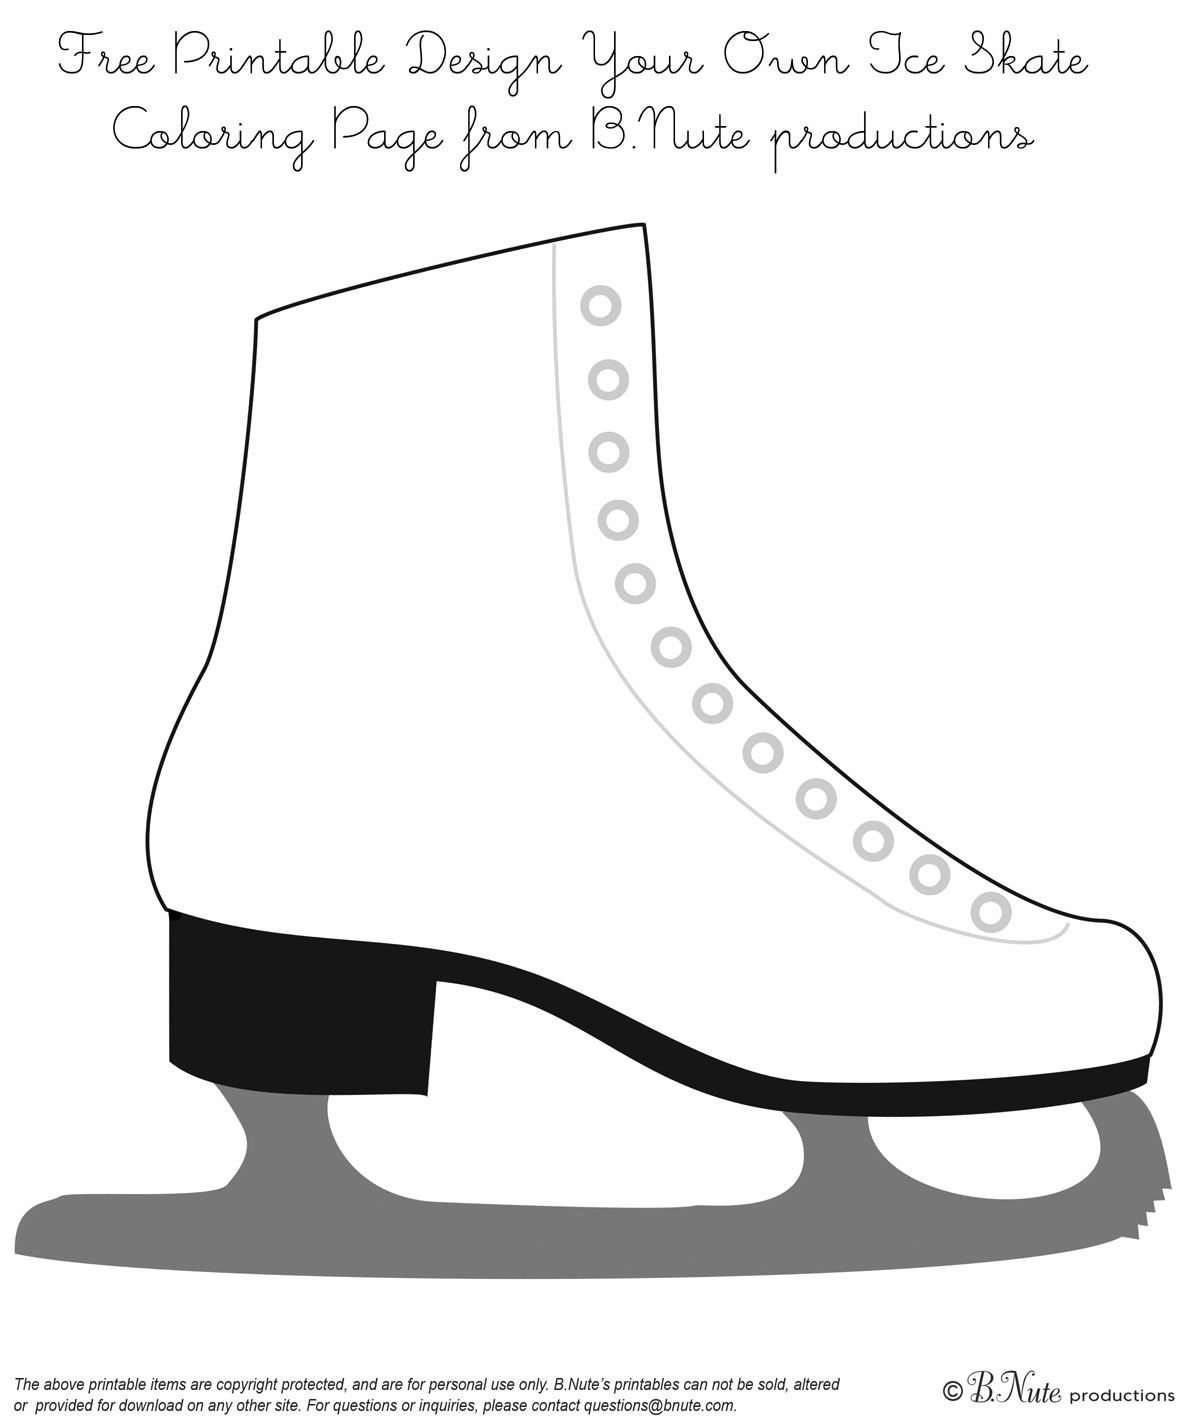 ice skate coloring pages bnute productions: Free Printable Coloring Page: Design Your Own  ice skate coloring pages